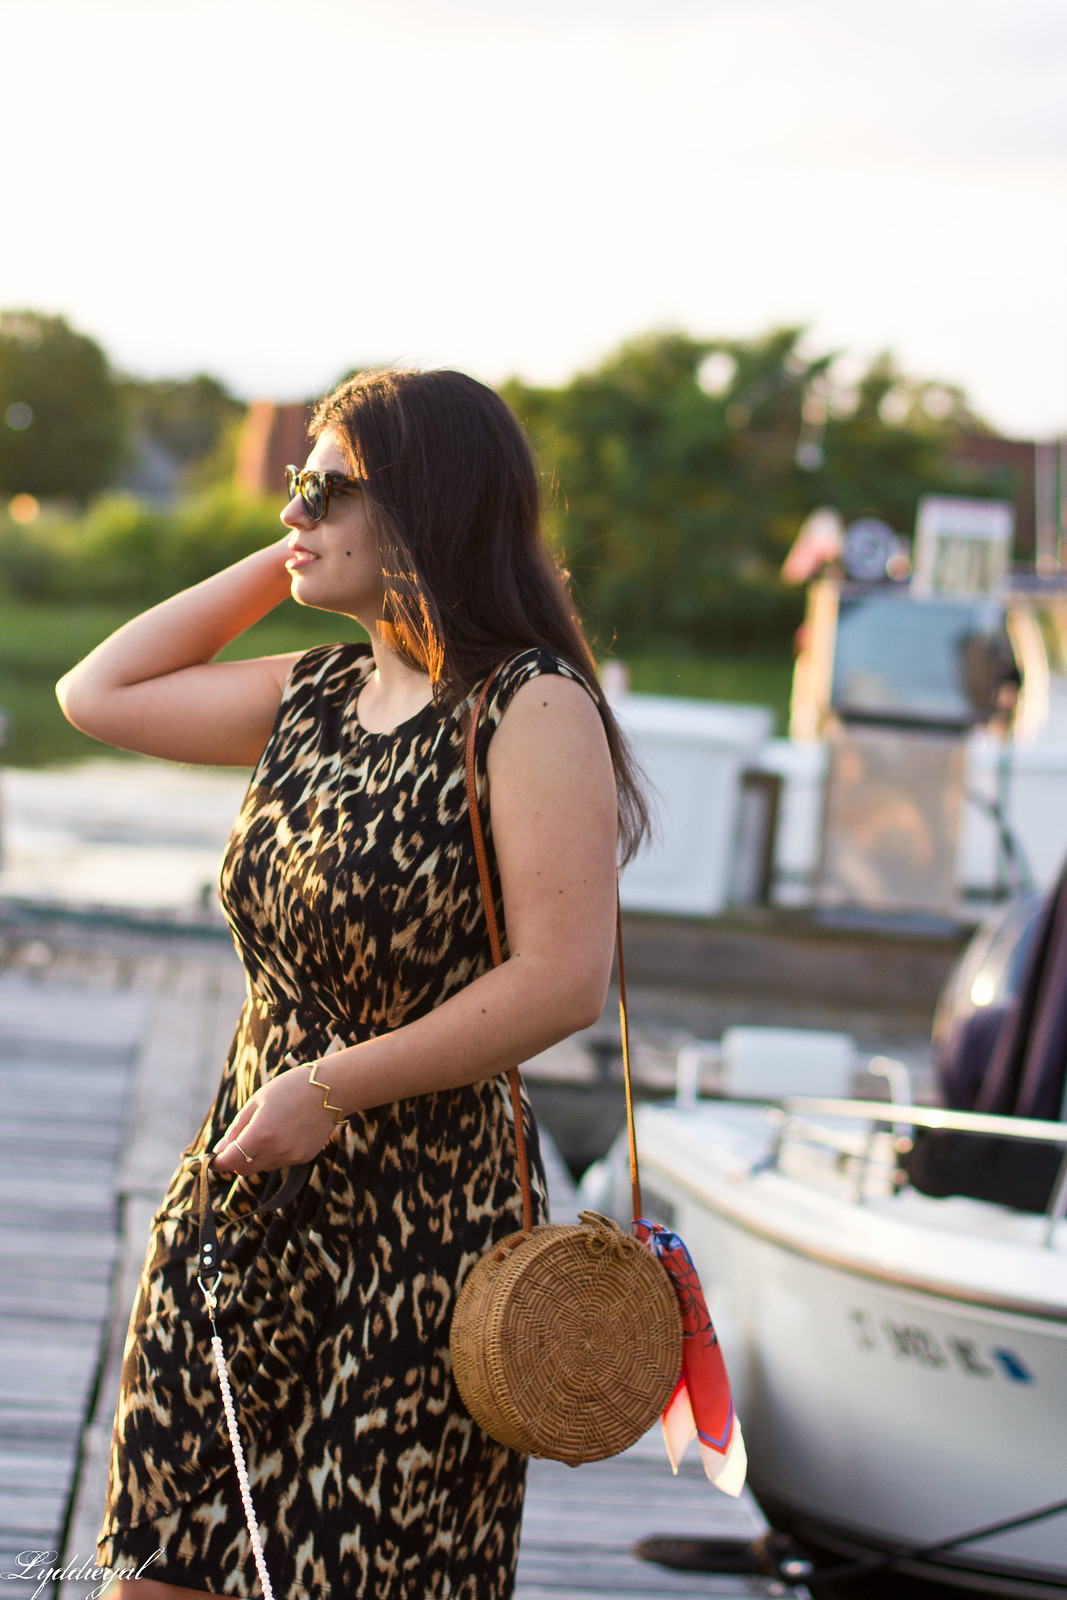 leopard sheath dress, round rattan bag, dog walking-8.jpg